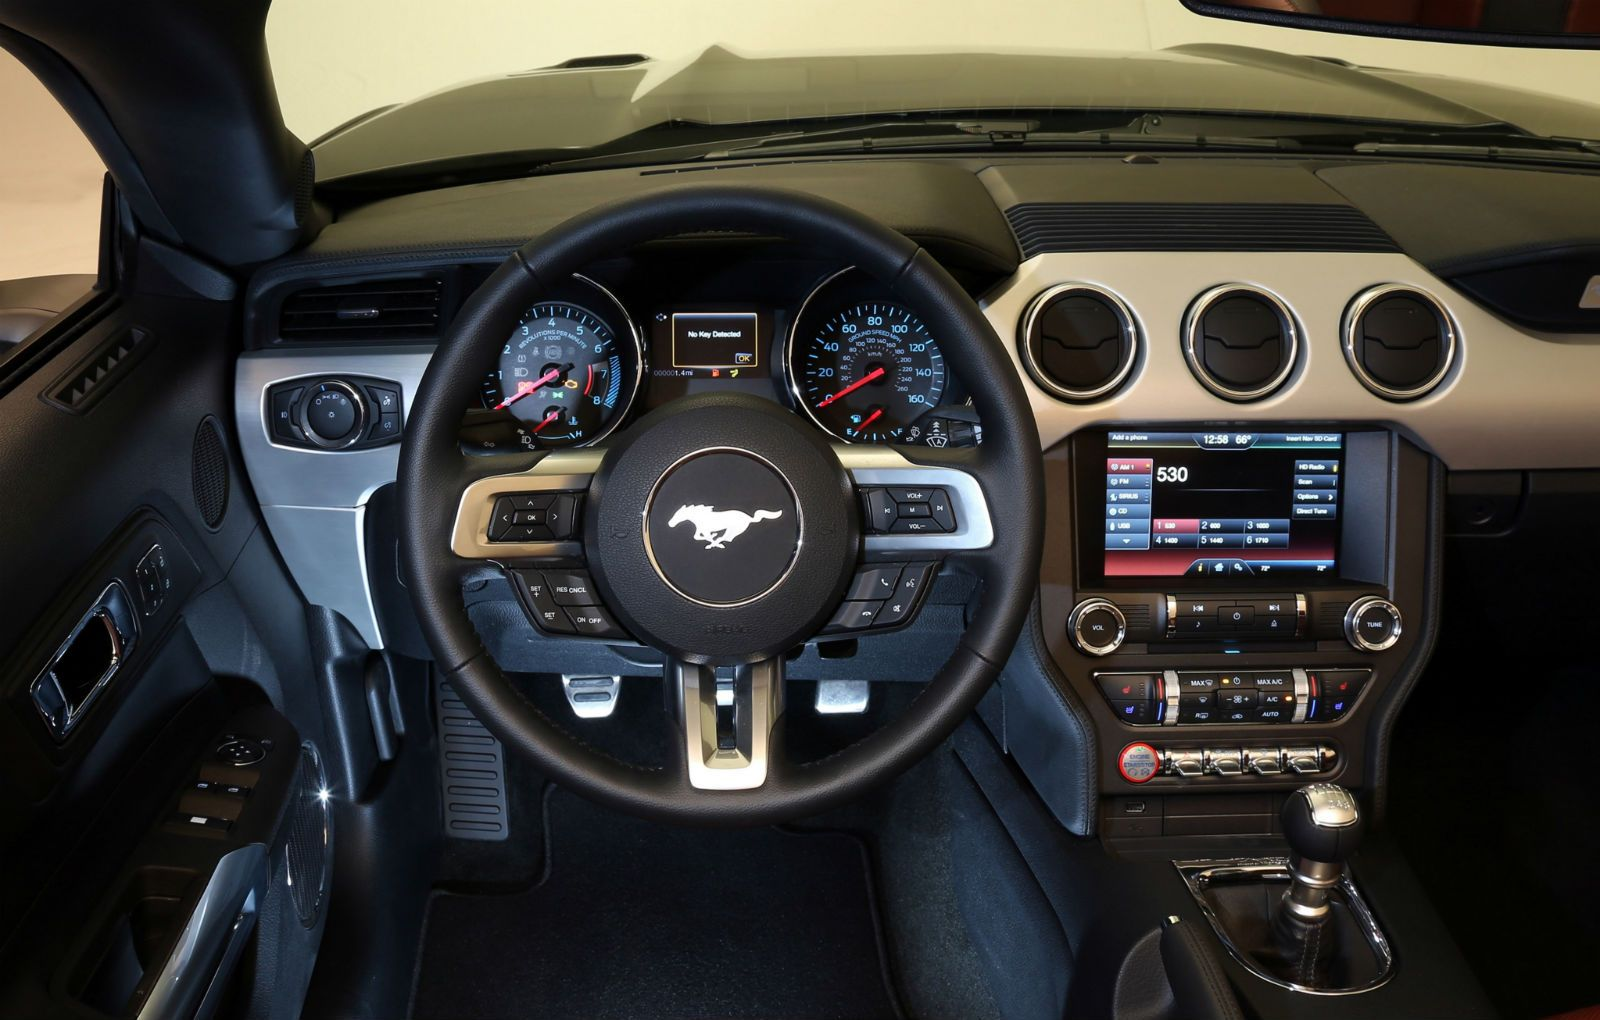 2015 Ford Mustang Interior Wallpaper Hd In 2020 Mustang Interior Ford Mustang Gt500 Ford Mustang Shelby